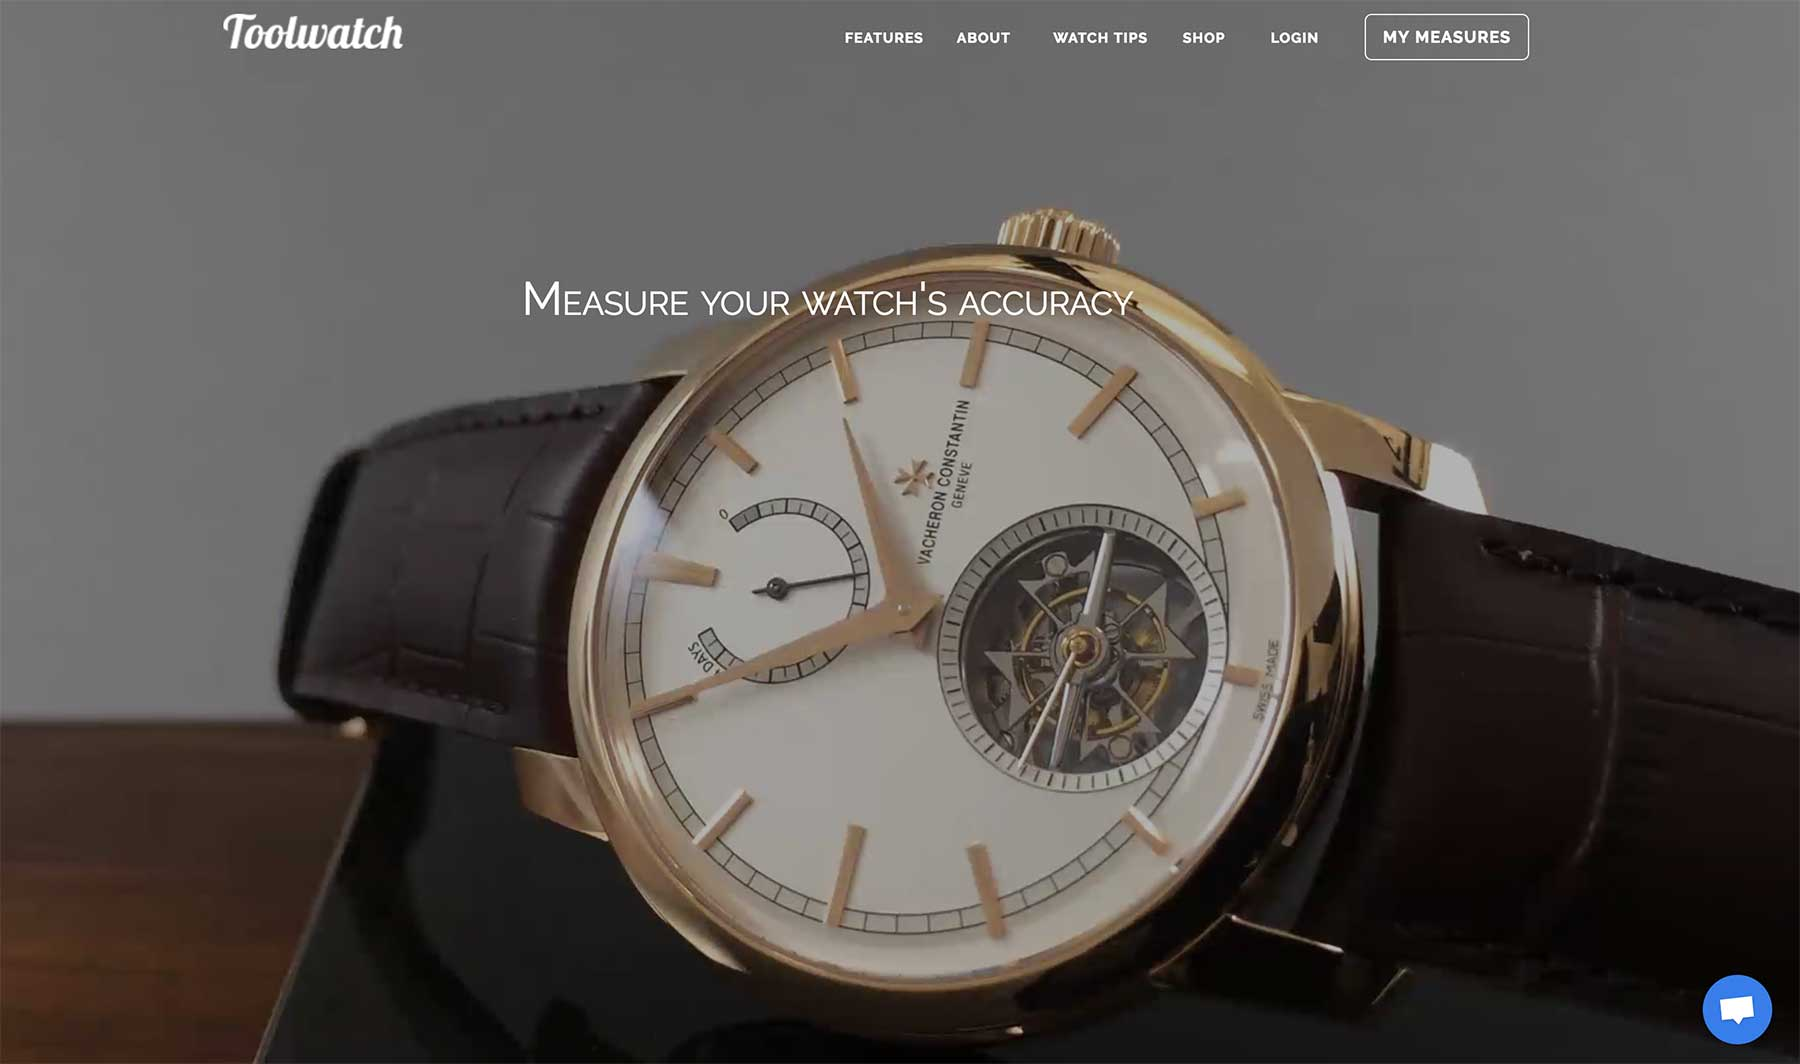 Toolwatch homepage